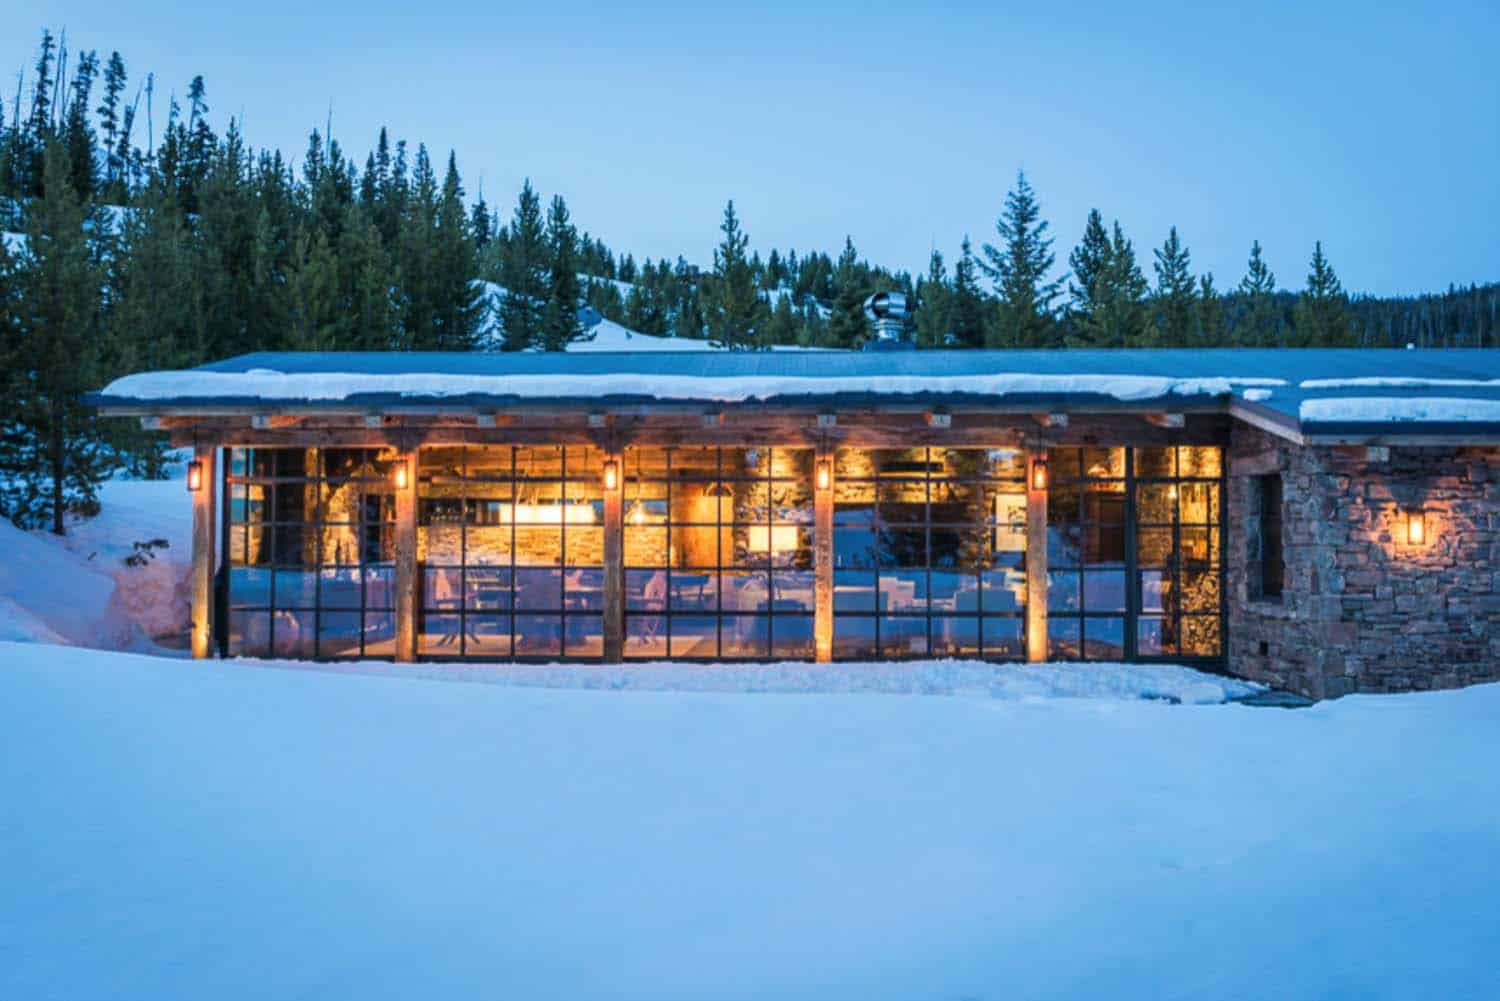 Mountain Guest Cabin-Pearson Design Group-19-1 Kindesign